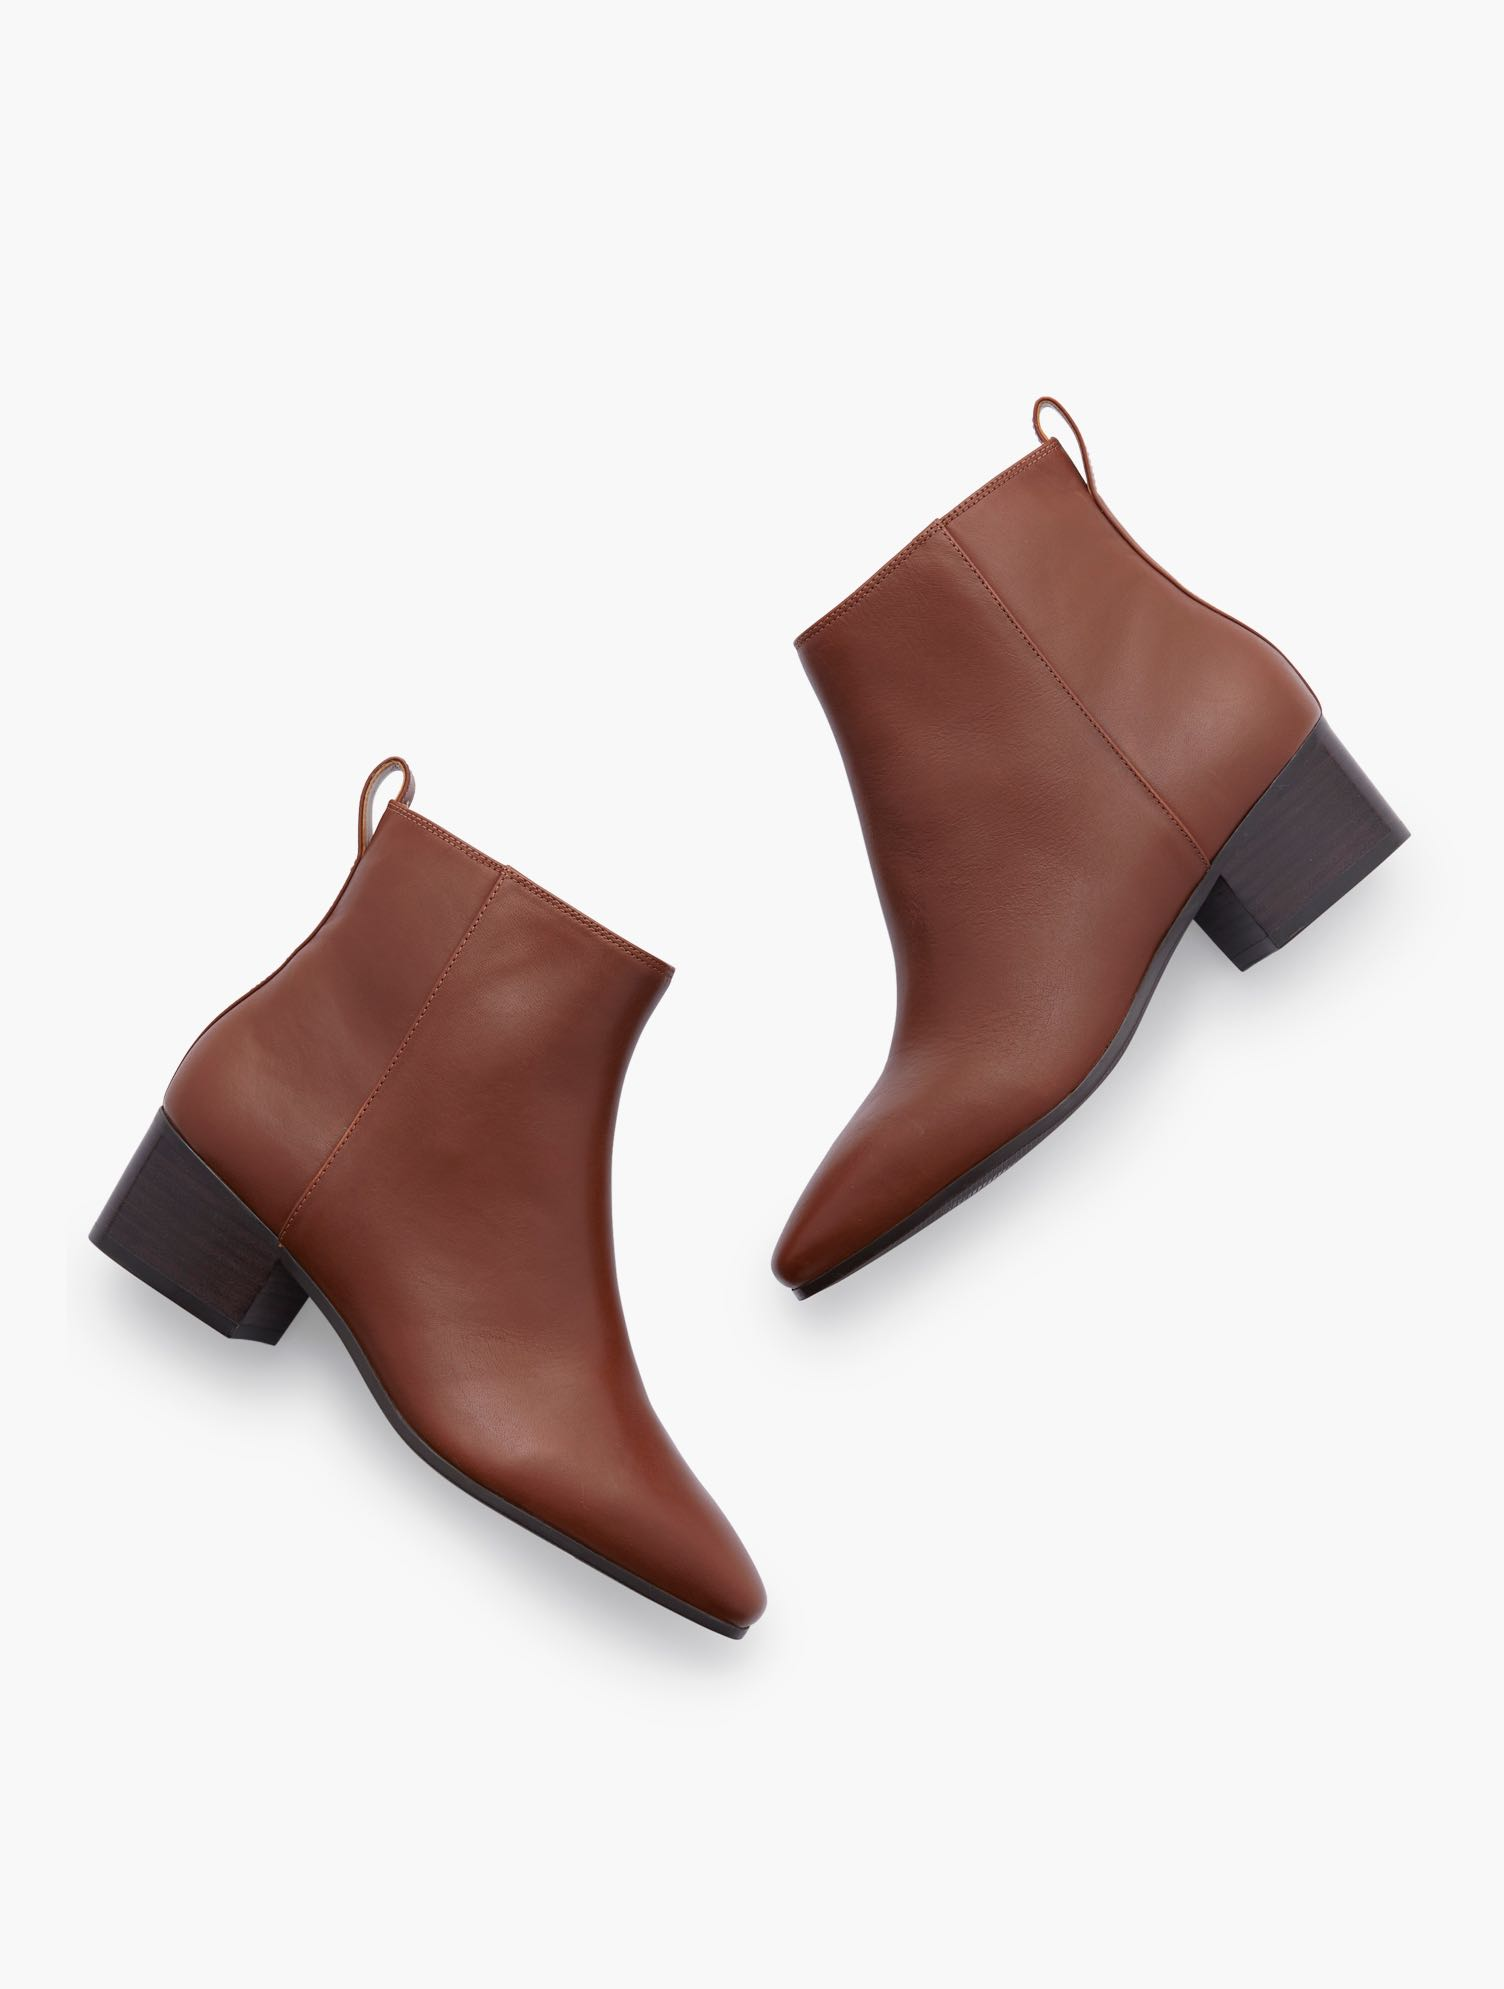 Your favorite Dakota ankle boots are back. In rich leather. With block heel and inside zip. Features Gift Box/Gift Wrap is not available for this item Inside side zipper 1 3/4 inches heel Almond toe 3MM Memory Foam Footbed Imported Material: 100% Leather Dakota Ankle Boots - Leather - Dark Rum - 11M Talbots